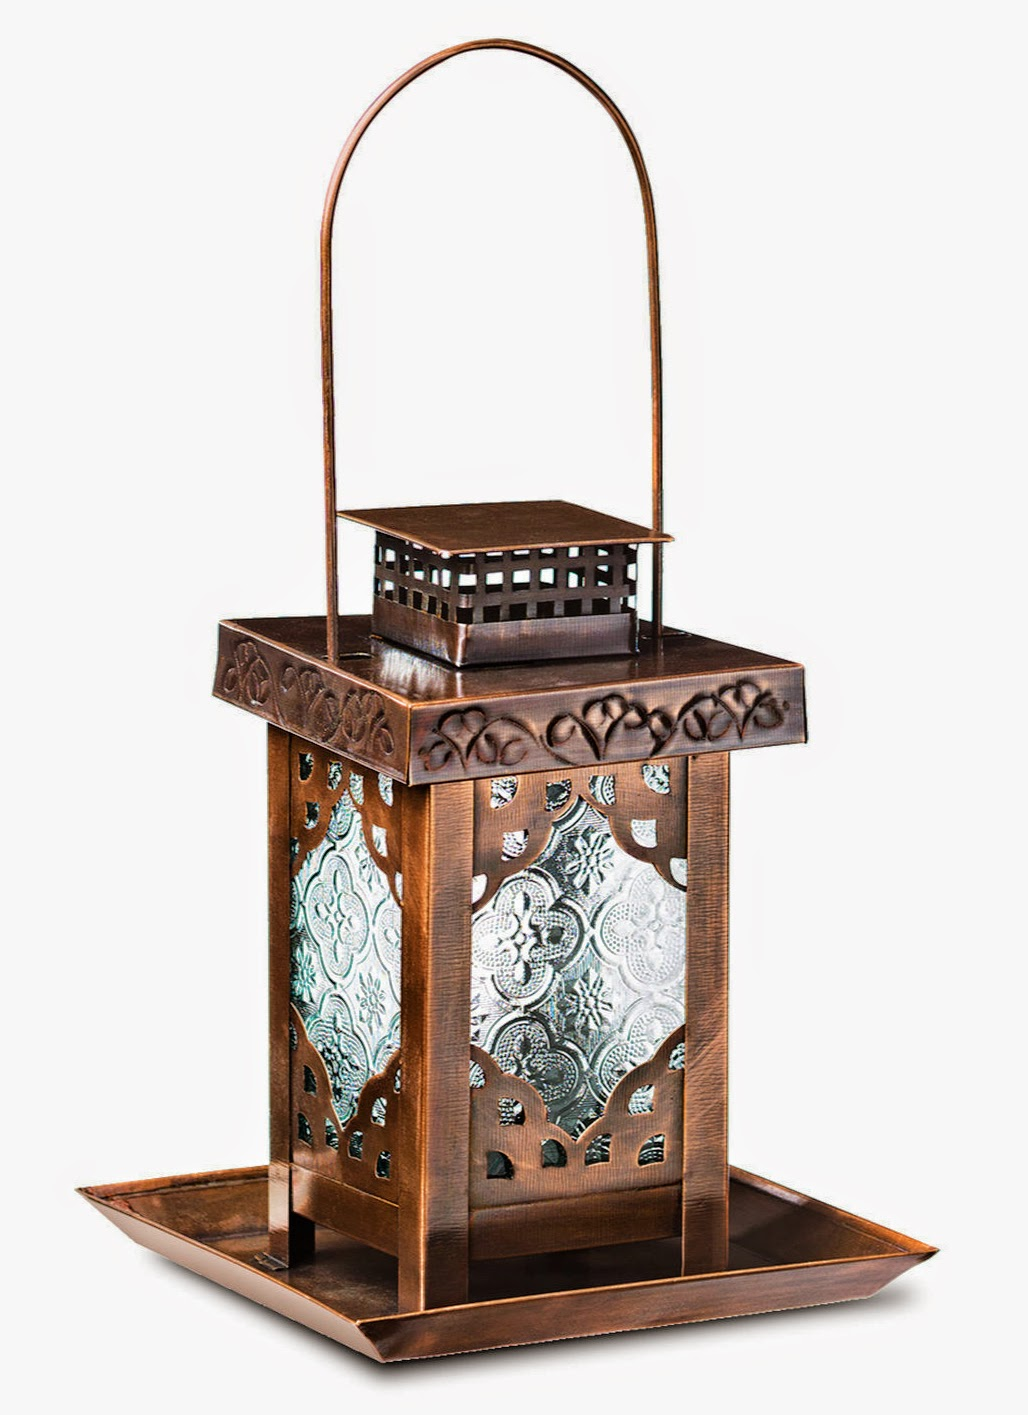 http://shop.unicefusa.org/hanging-bird-feeder/1UGG1519.html